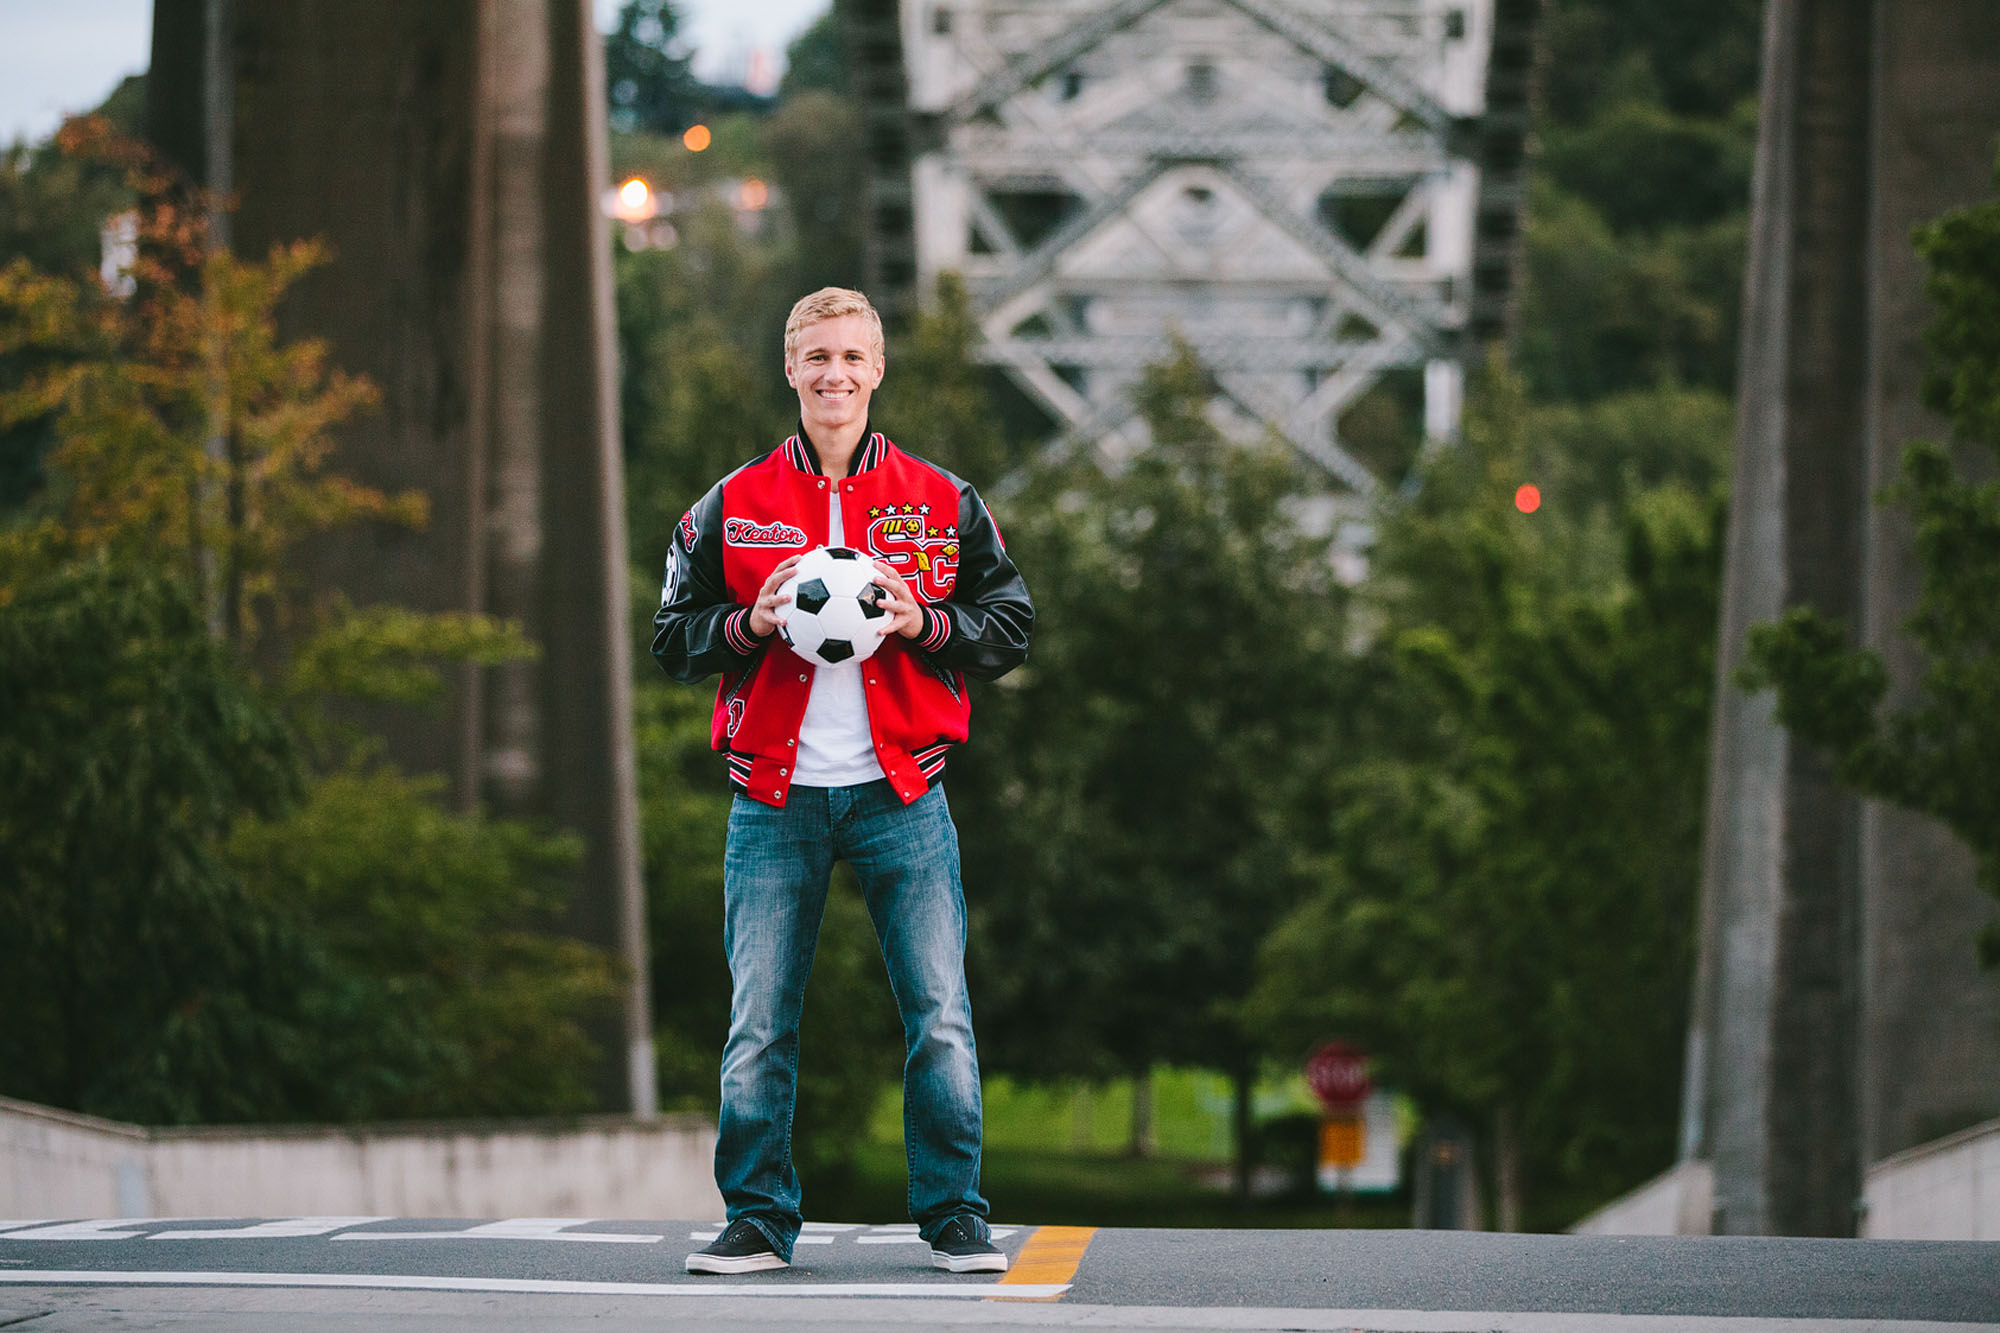 Seattle senior photography - Mike Fiechtner Photography